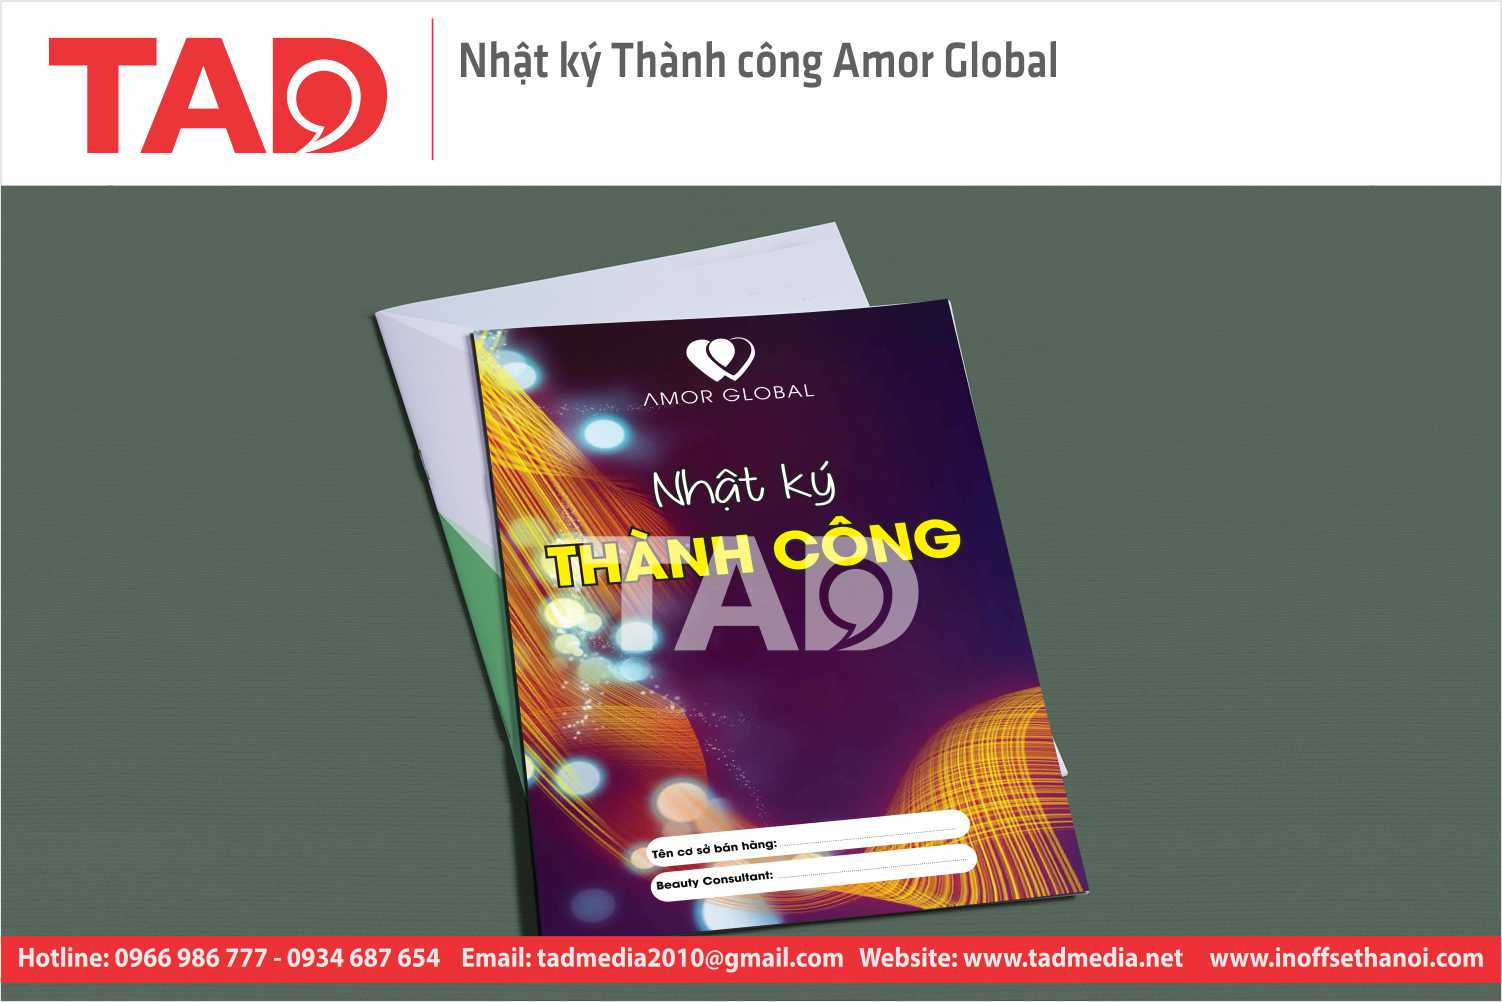 112 Nhat ky thanh cong amor